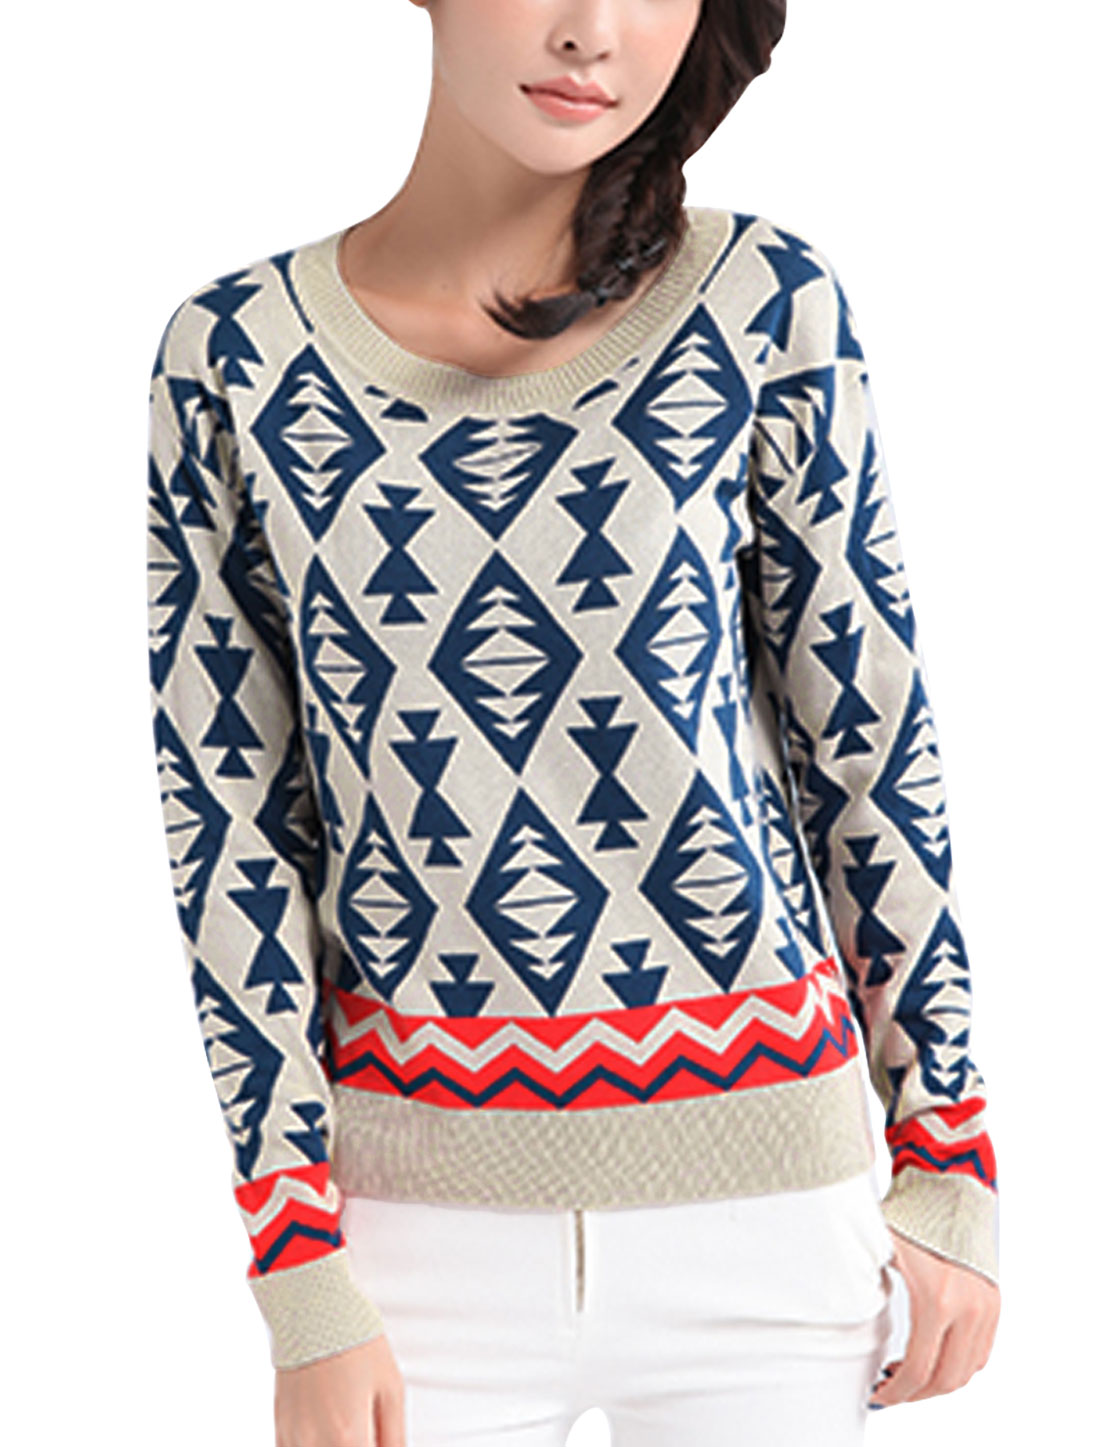 Women Geometric Pattern Round Neck Long Sleeve Knit Shirt Navy Blue Beige S